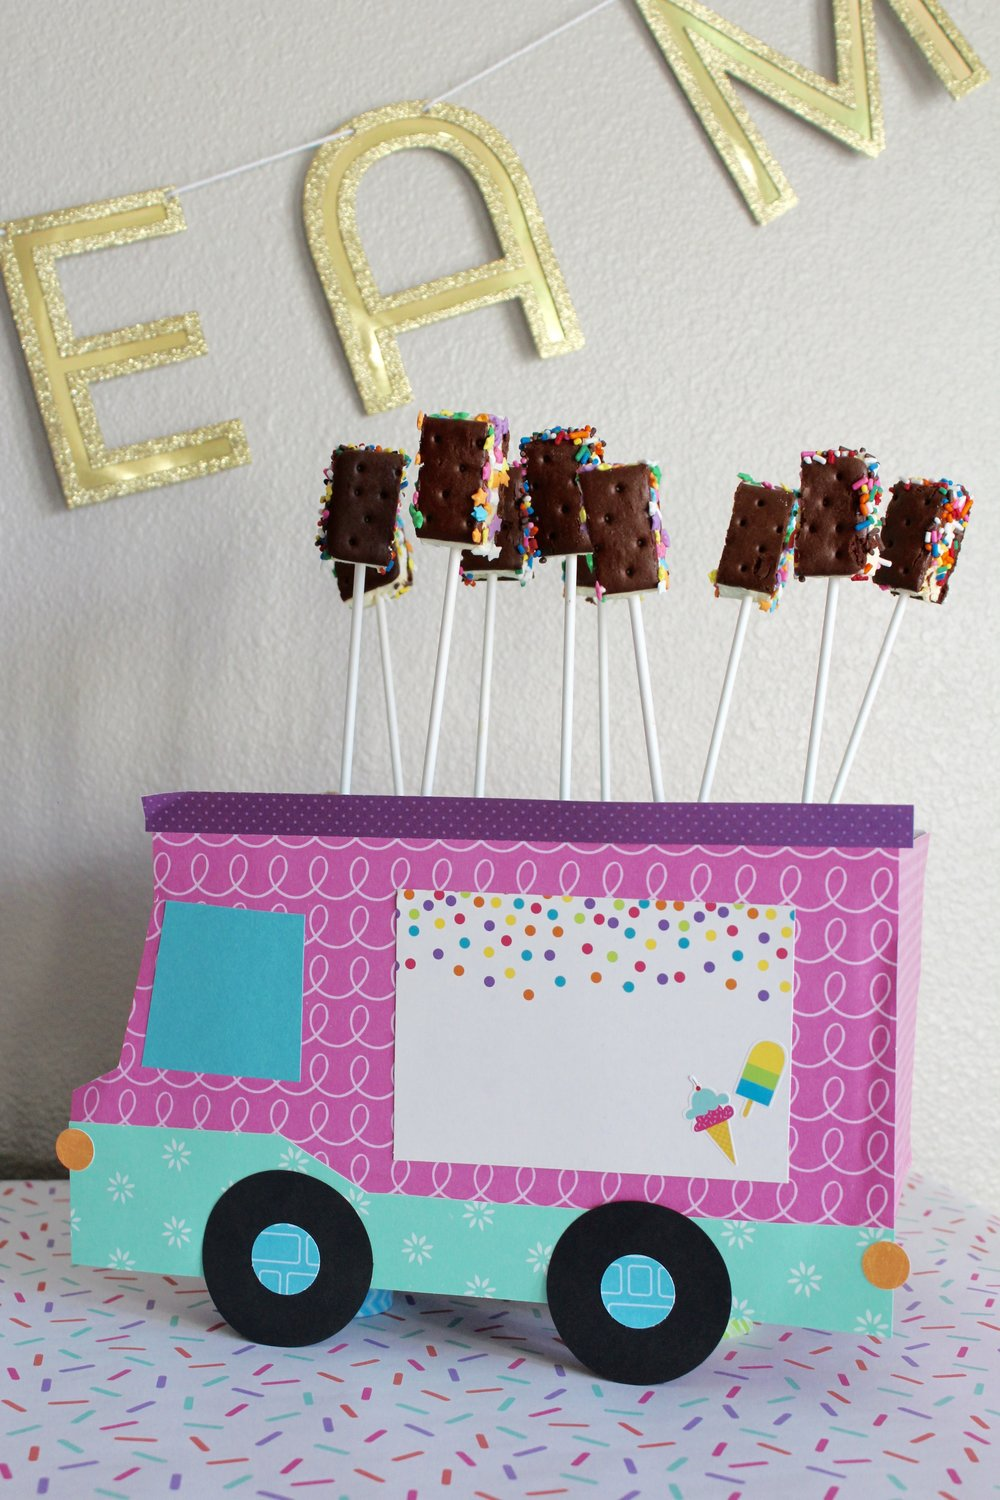 DesignOrganizeParty_Miniature Ice Cream Party_Ice Cream Truck_Sandwiches_Mini